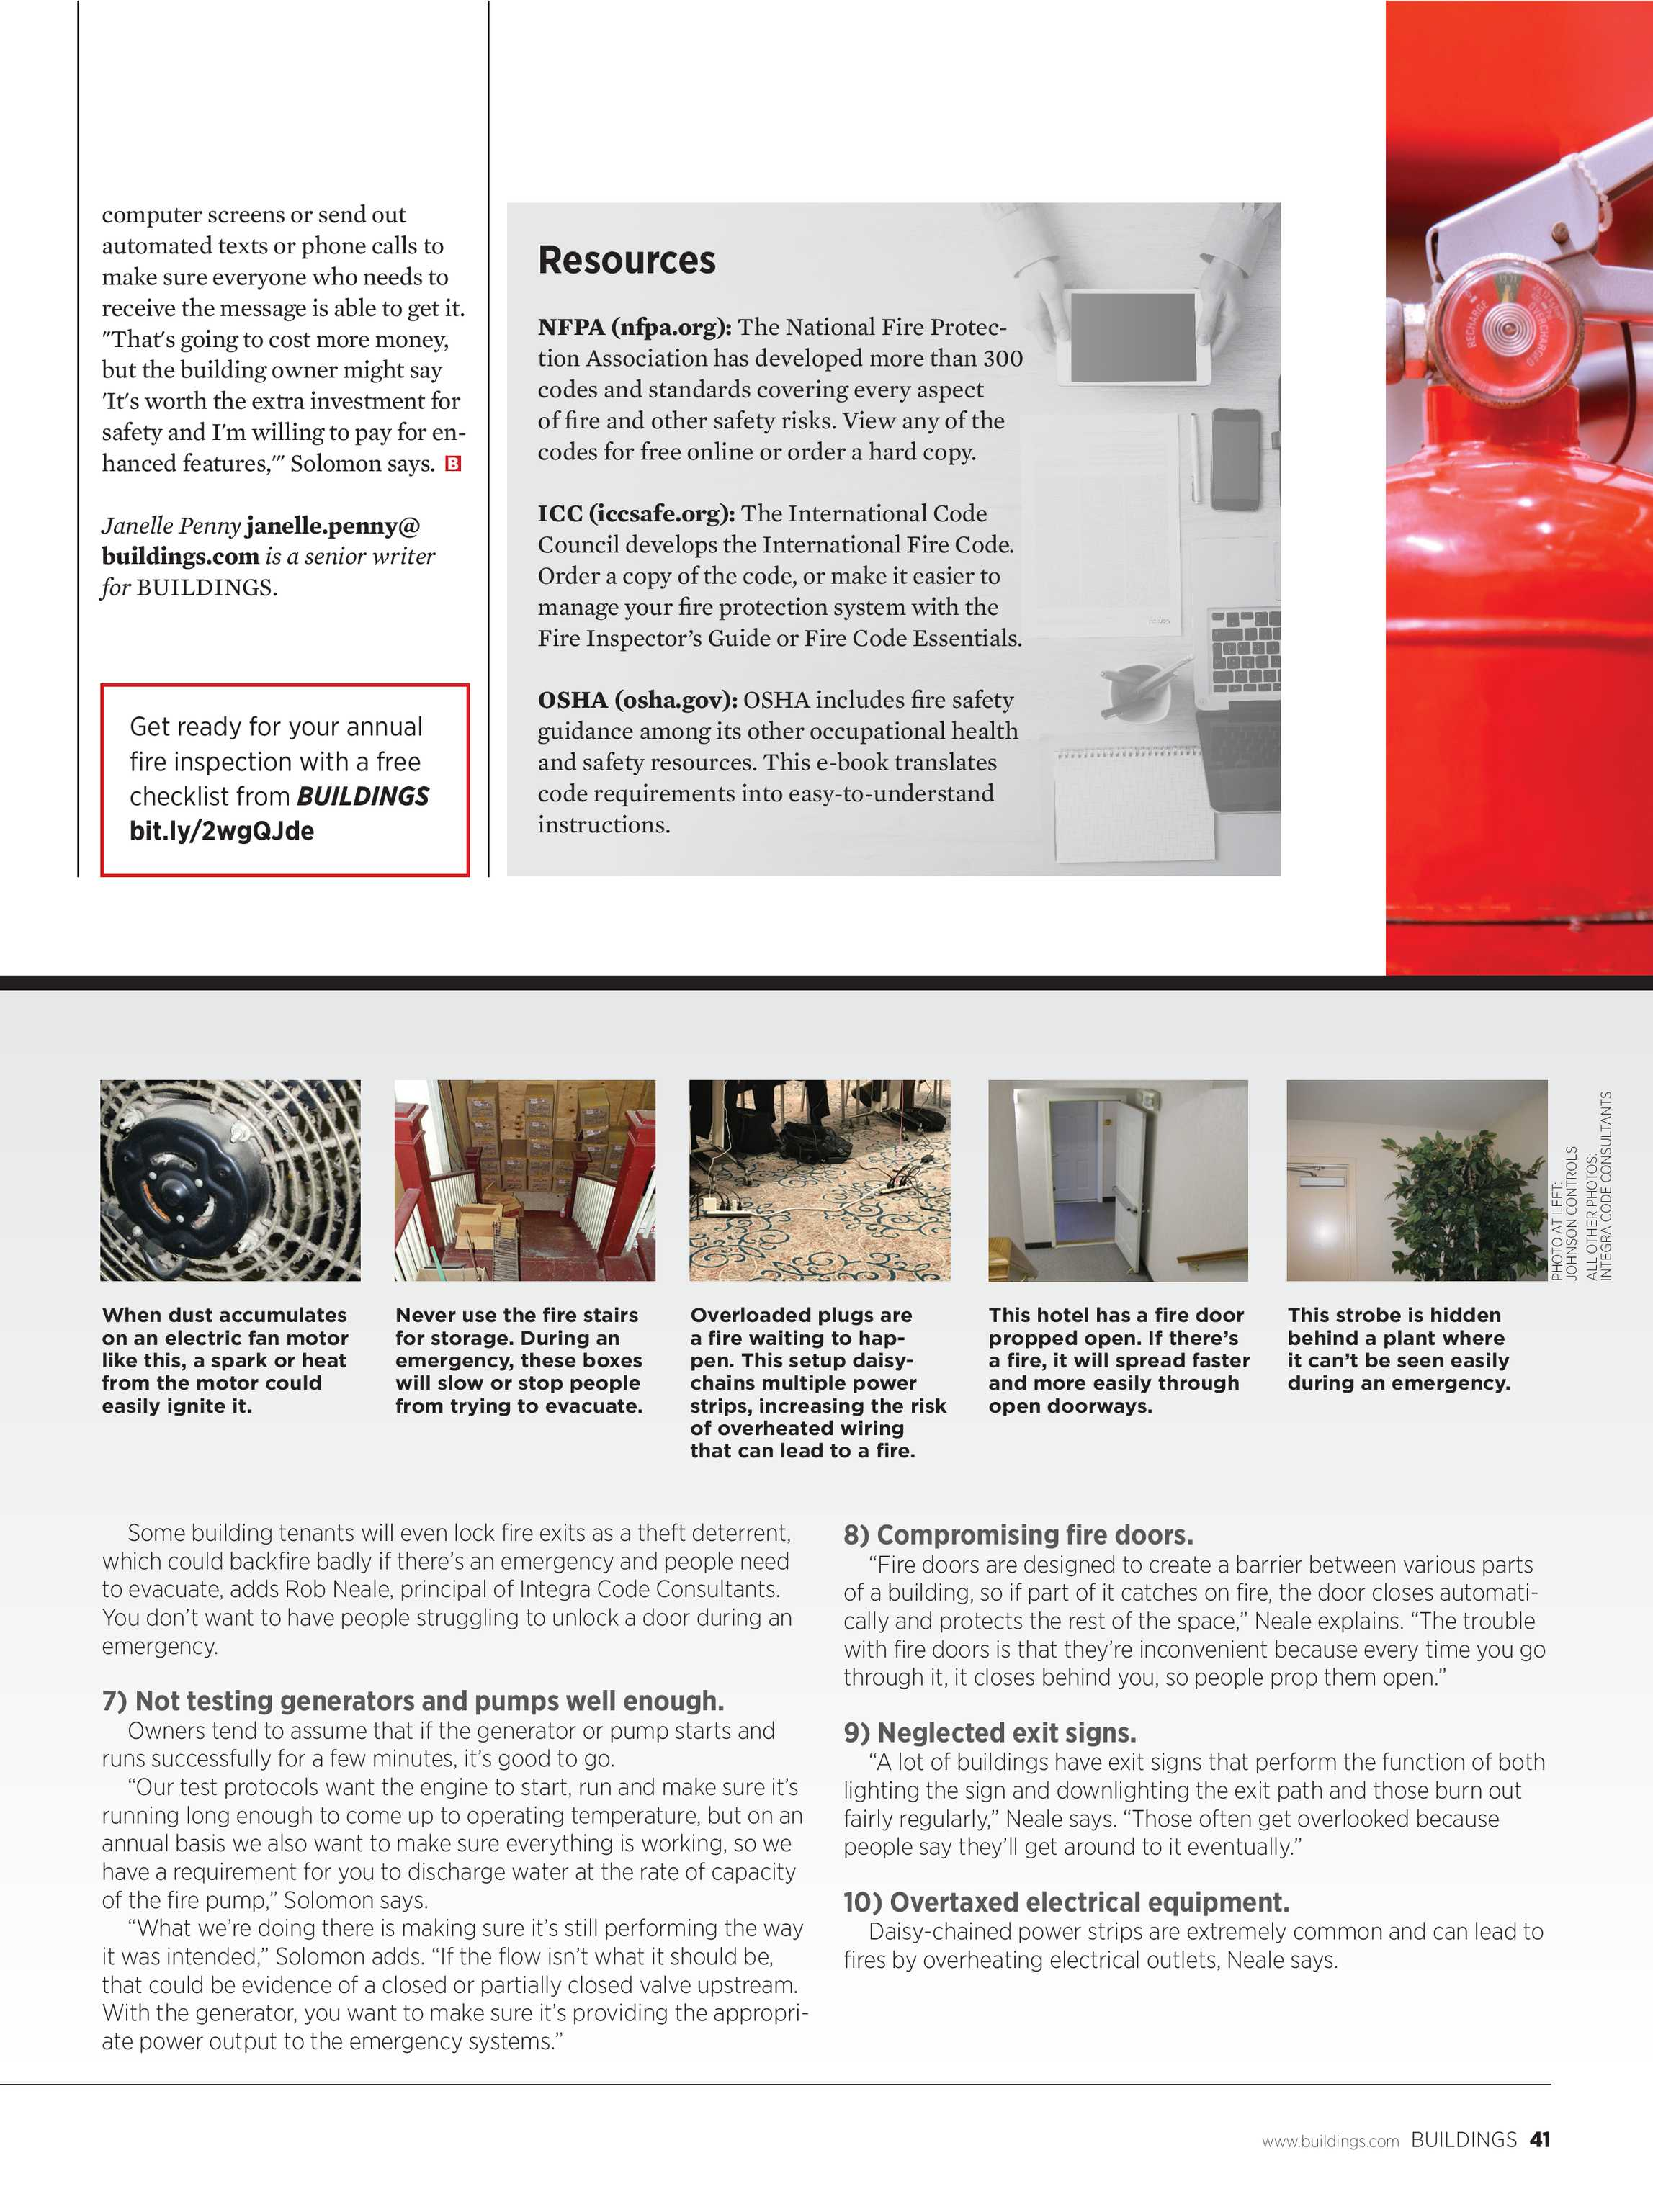 Buildings Magazine - September_2018 - page 41